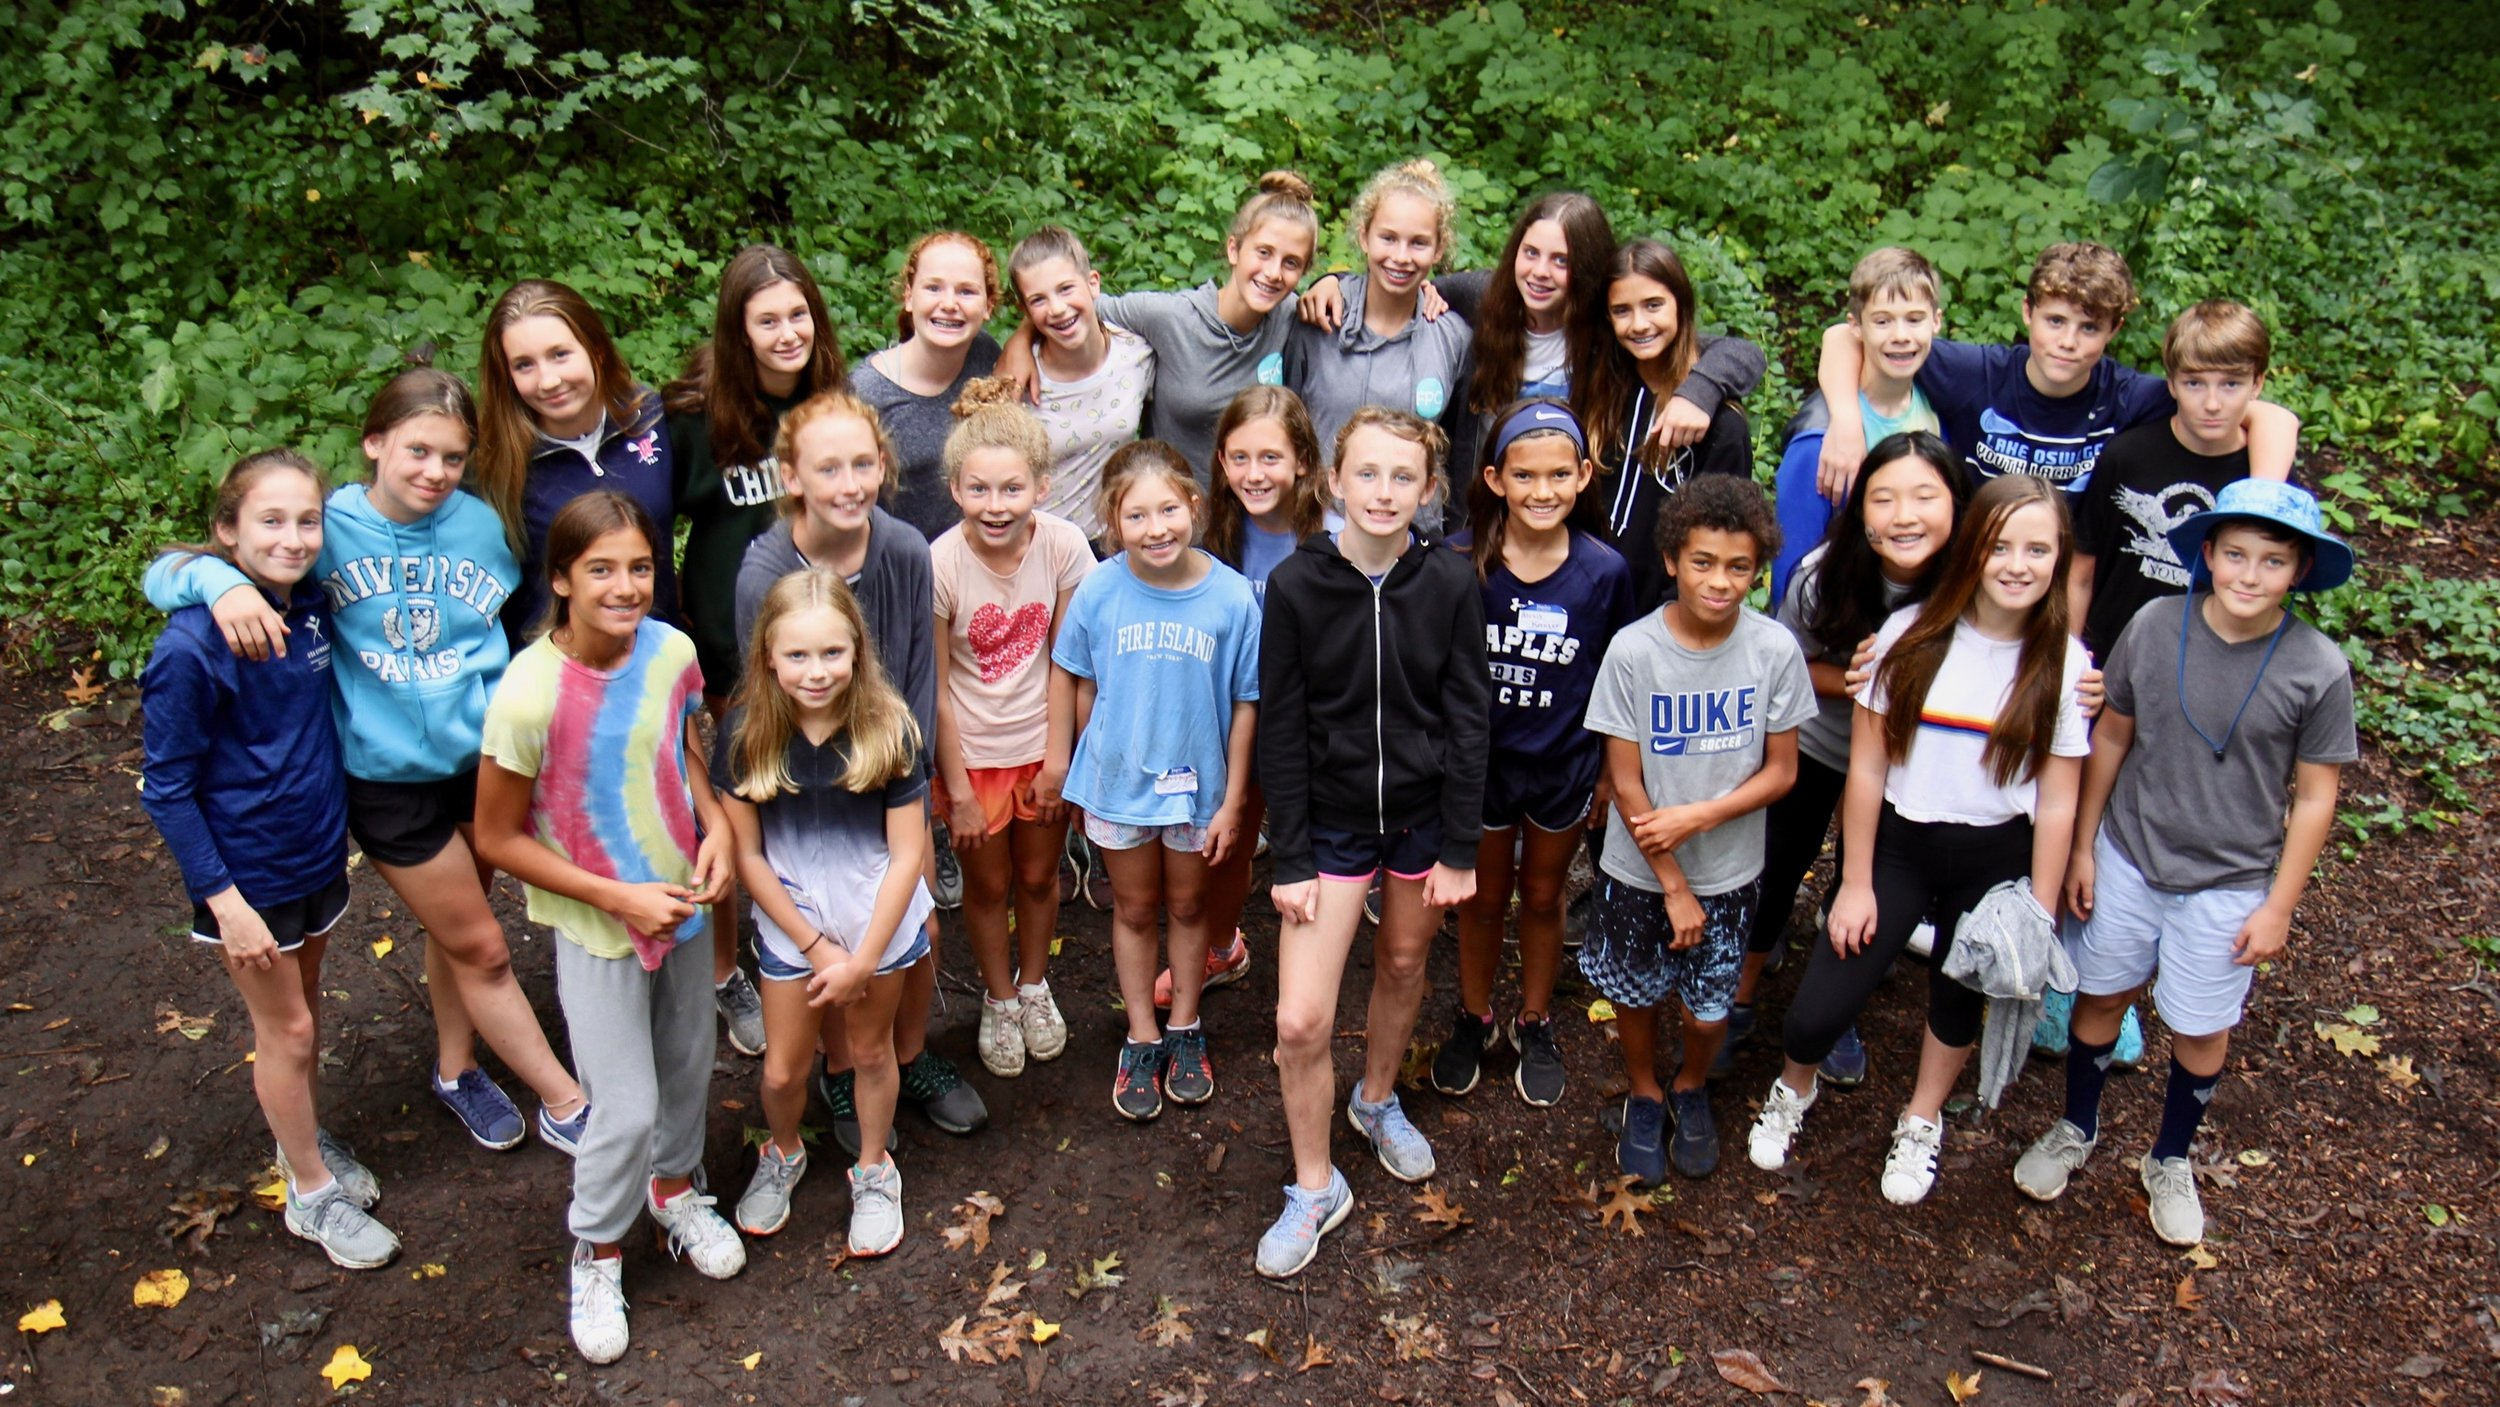 Calling Middle Schoolers - Grades 6-8 meet weekly (when Westport schools are in session) to explore faith together, led by experienced youth leaders who make it a warm, fun journey. Meetings kicked off on Wednesday September 11 at 6:00 -7:30 pm. Reach out to Jennifer Putman with questions.